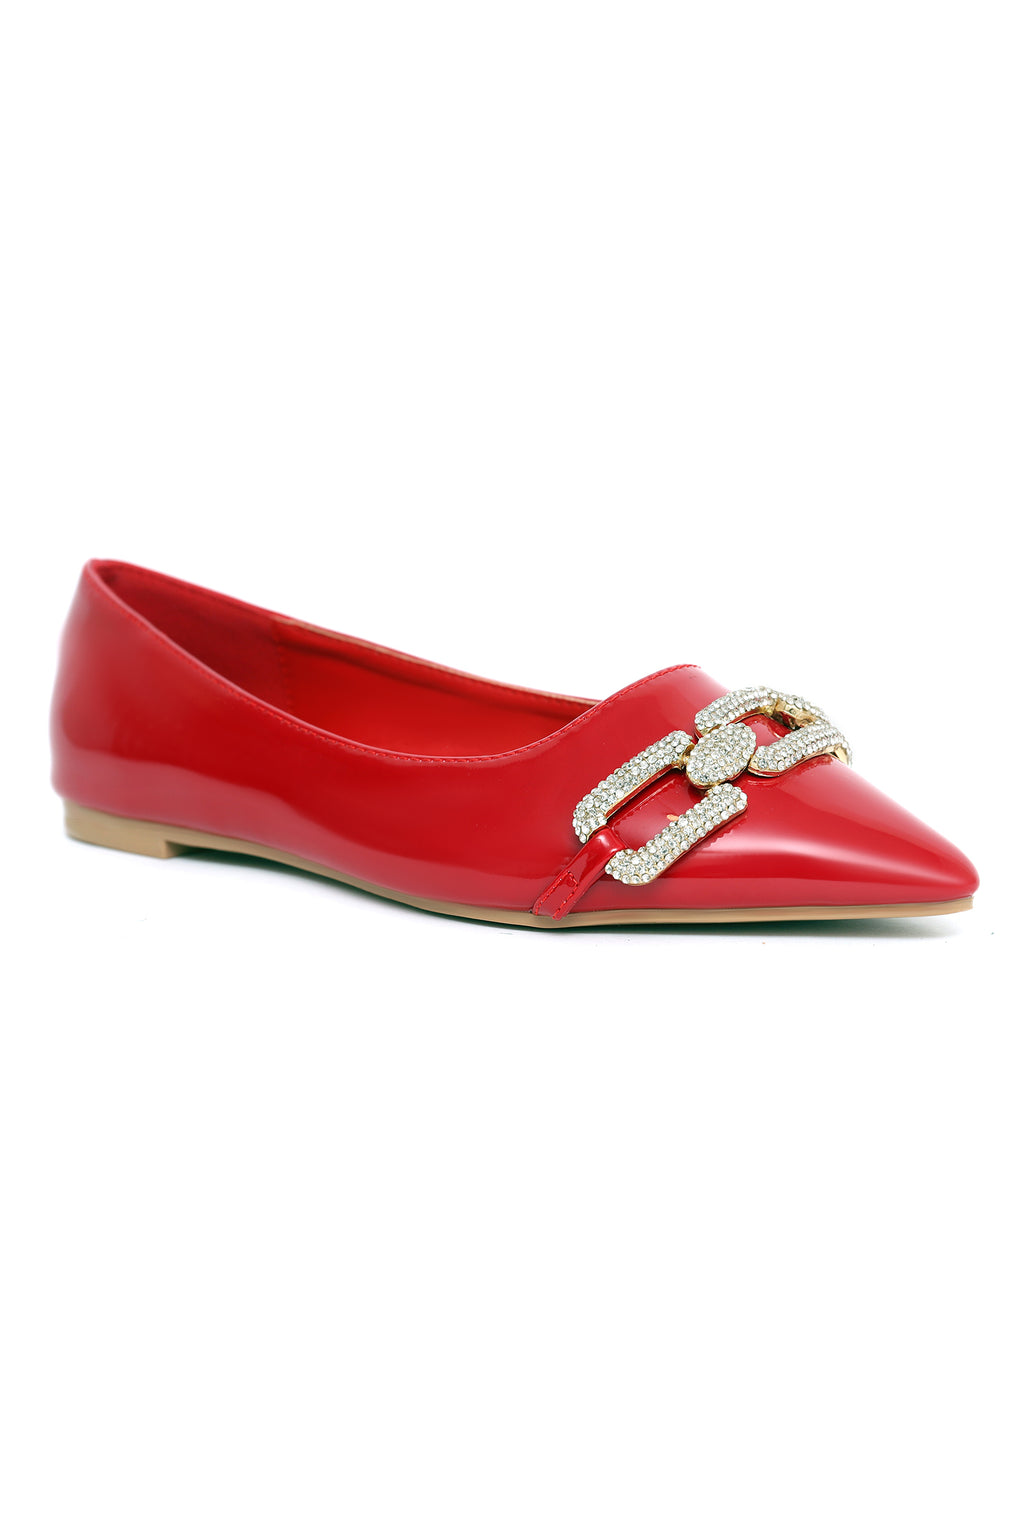 CRYSTAL LINK PUMPS-RED